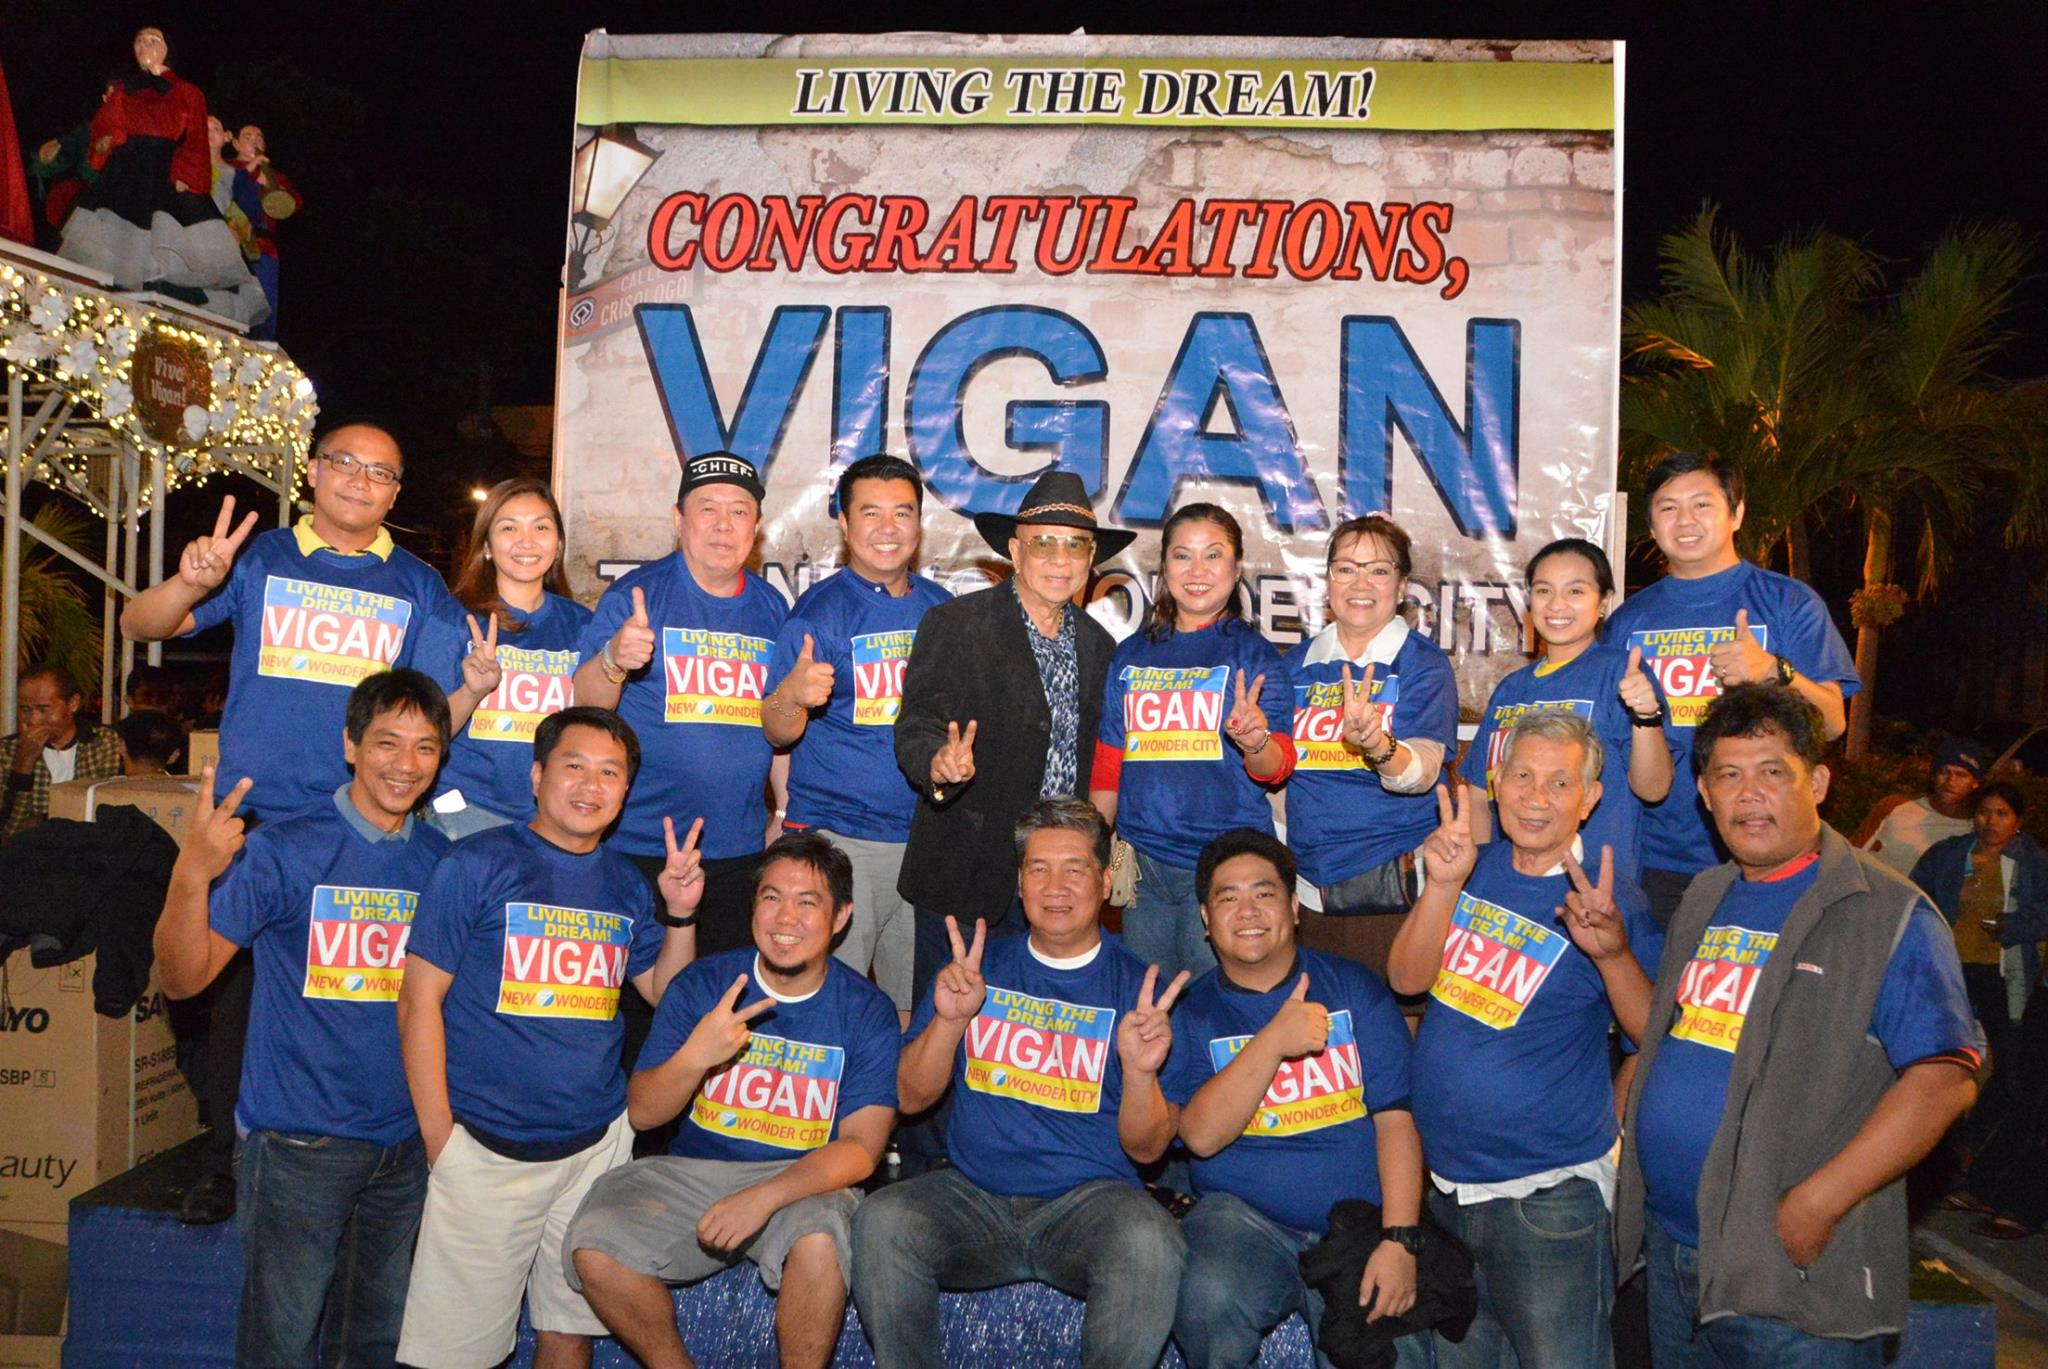 Vigan City Declared as New 7 Wonders Cities of the World at 3:00 AM Philippine Time on December 8, 2014